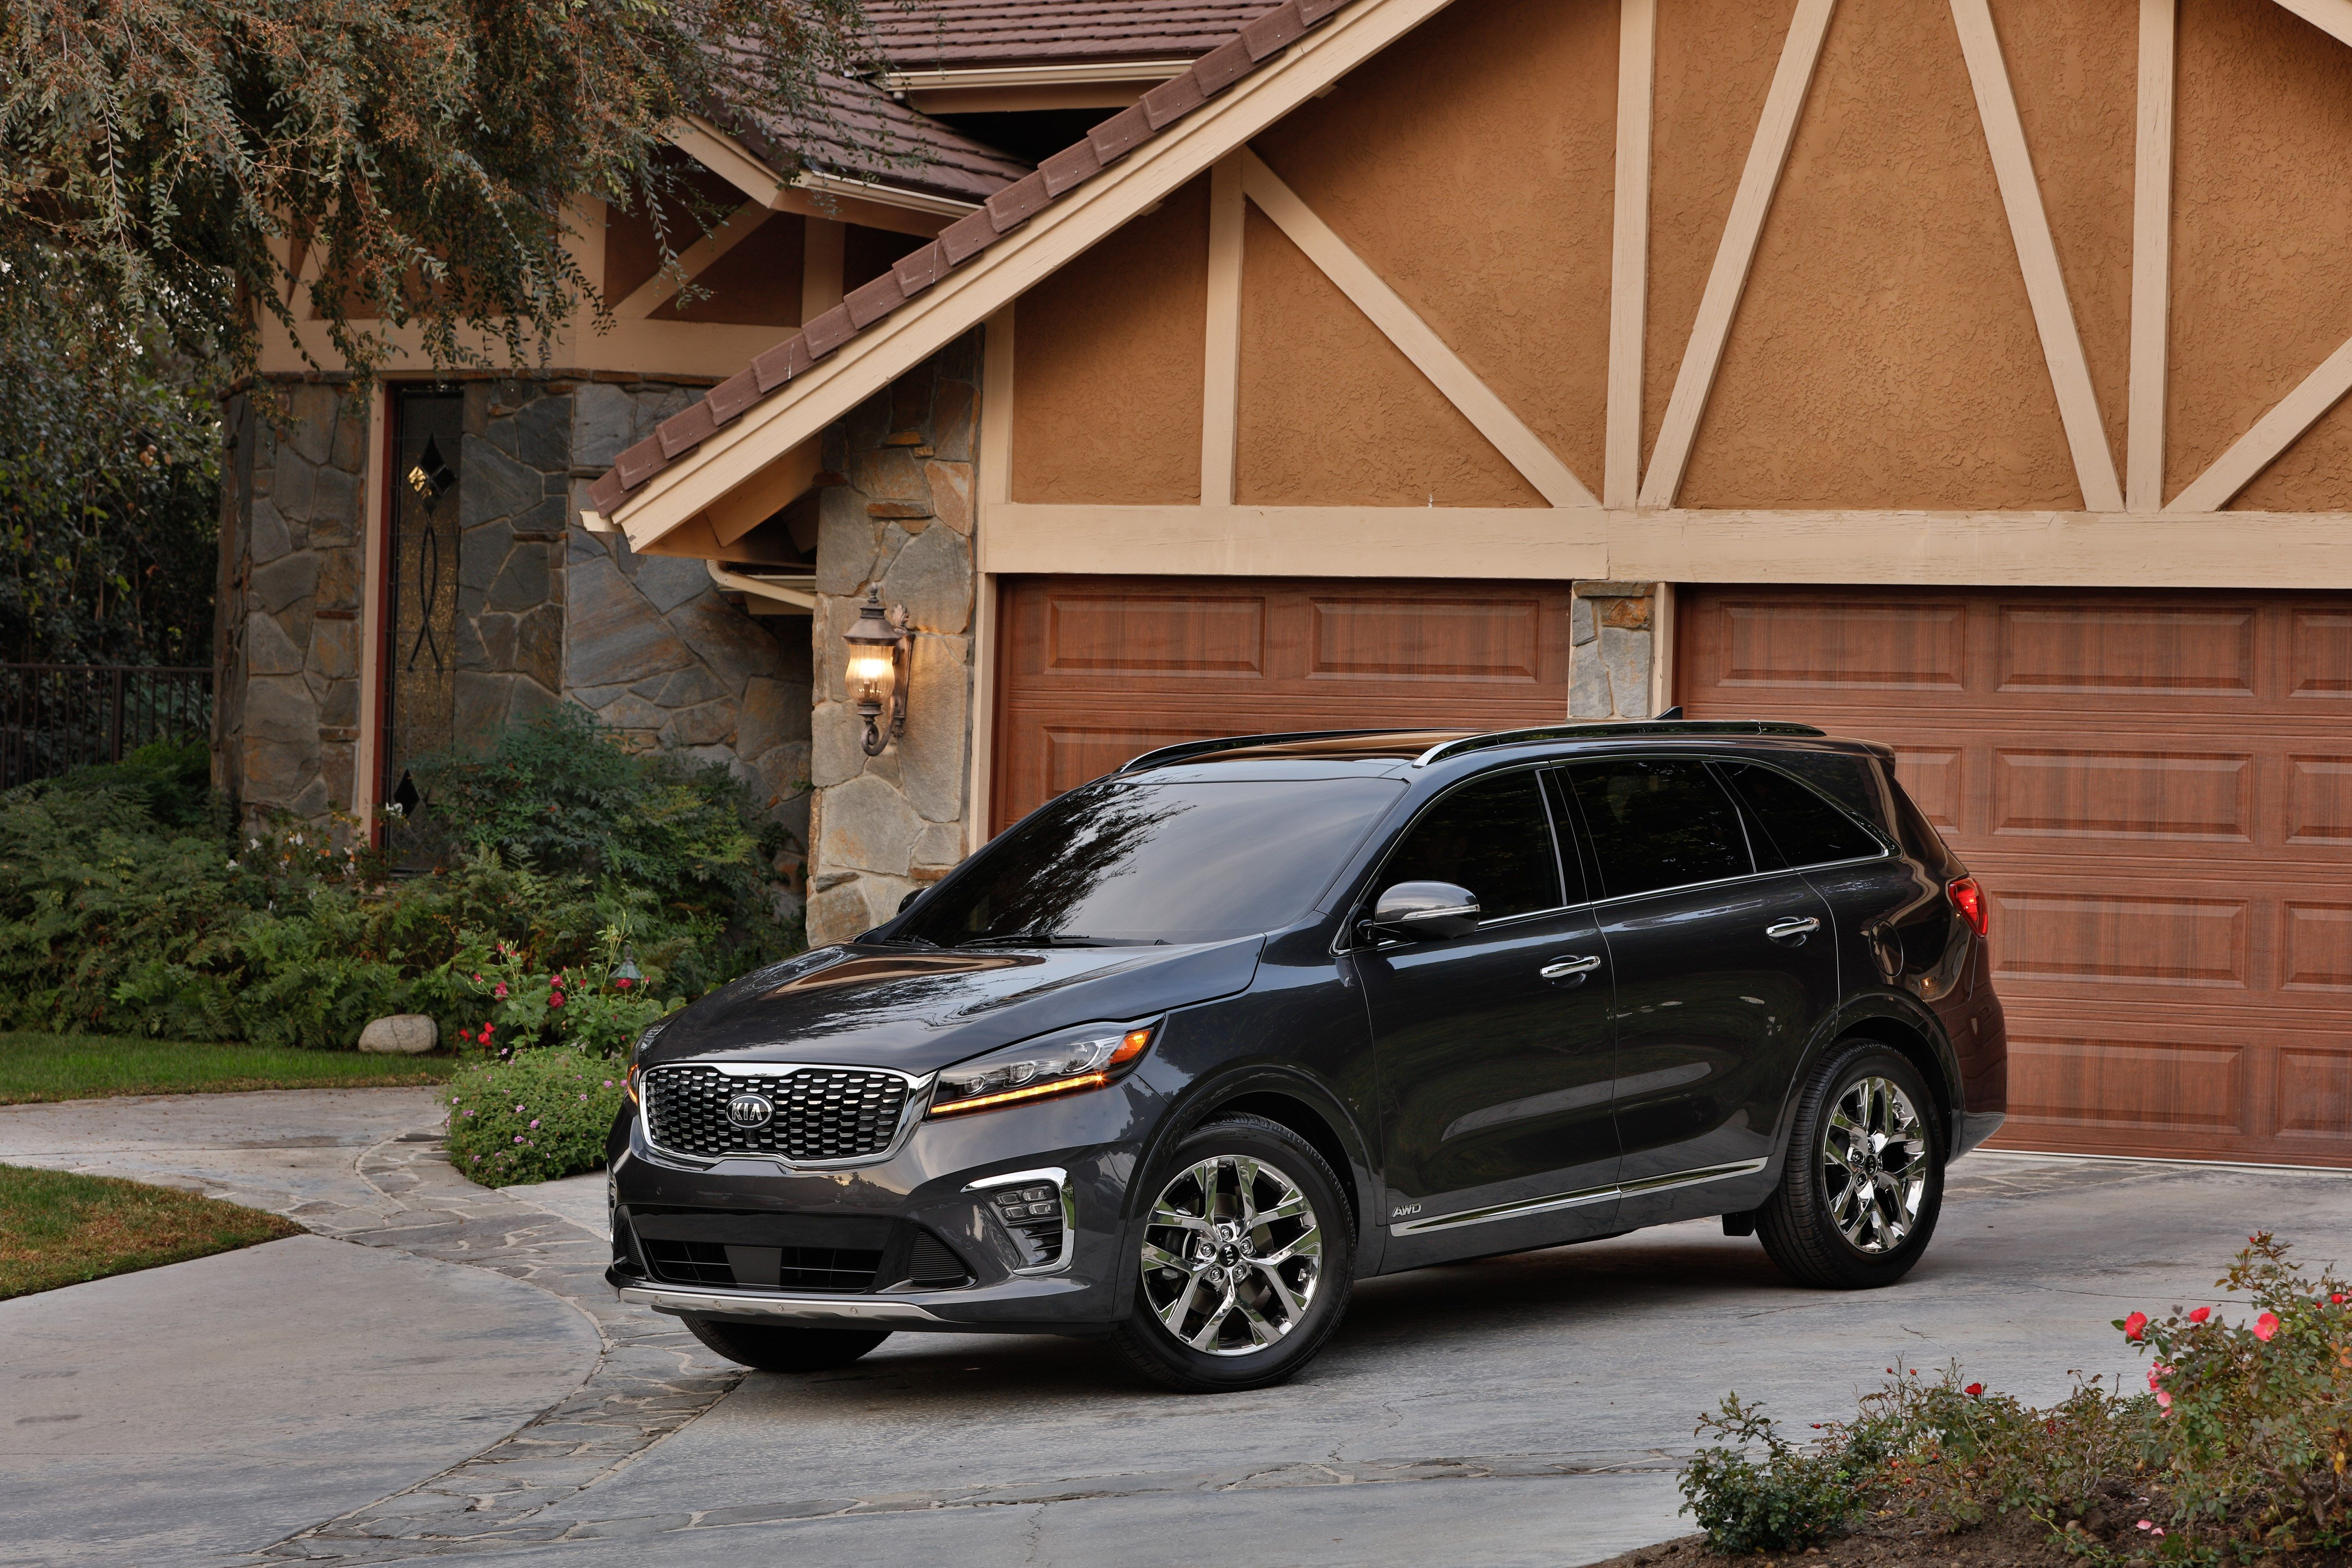 2020 kia sorento review pricing and specs car and driver